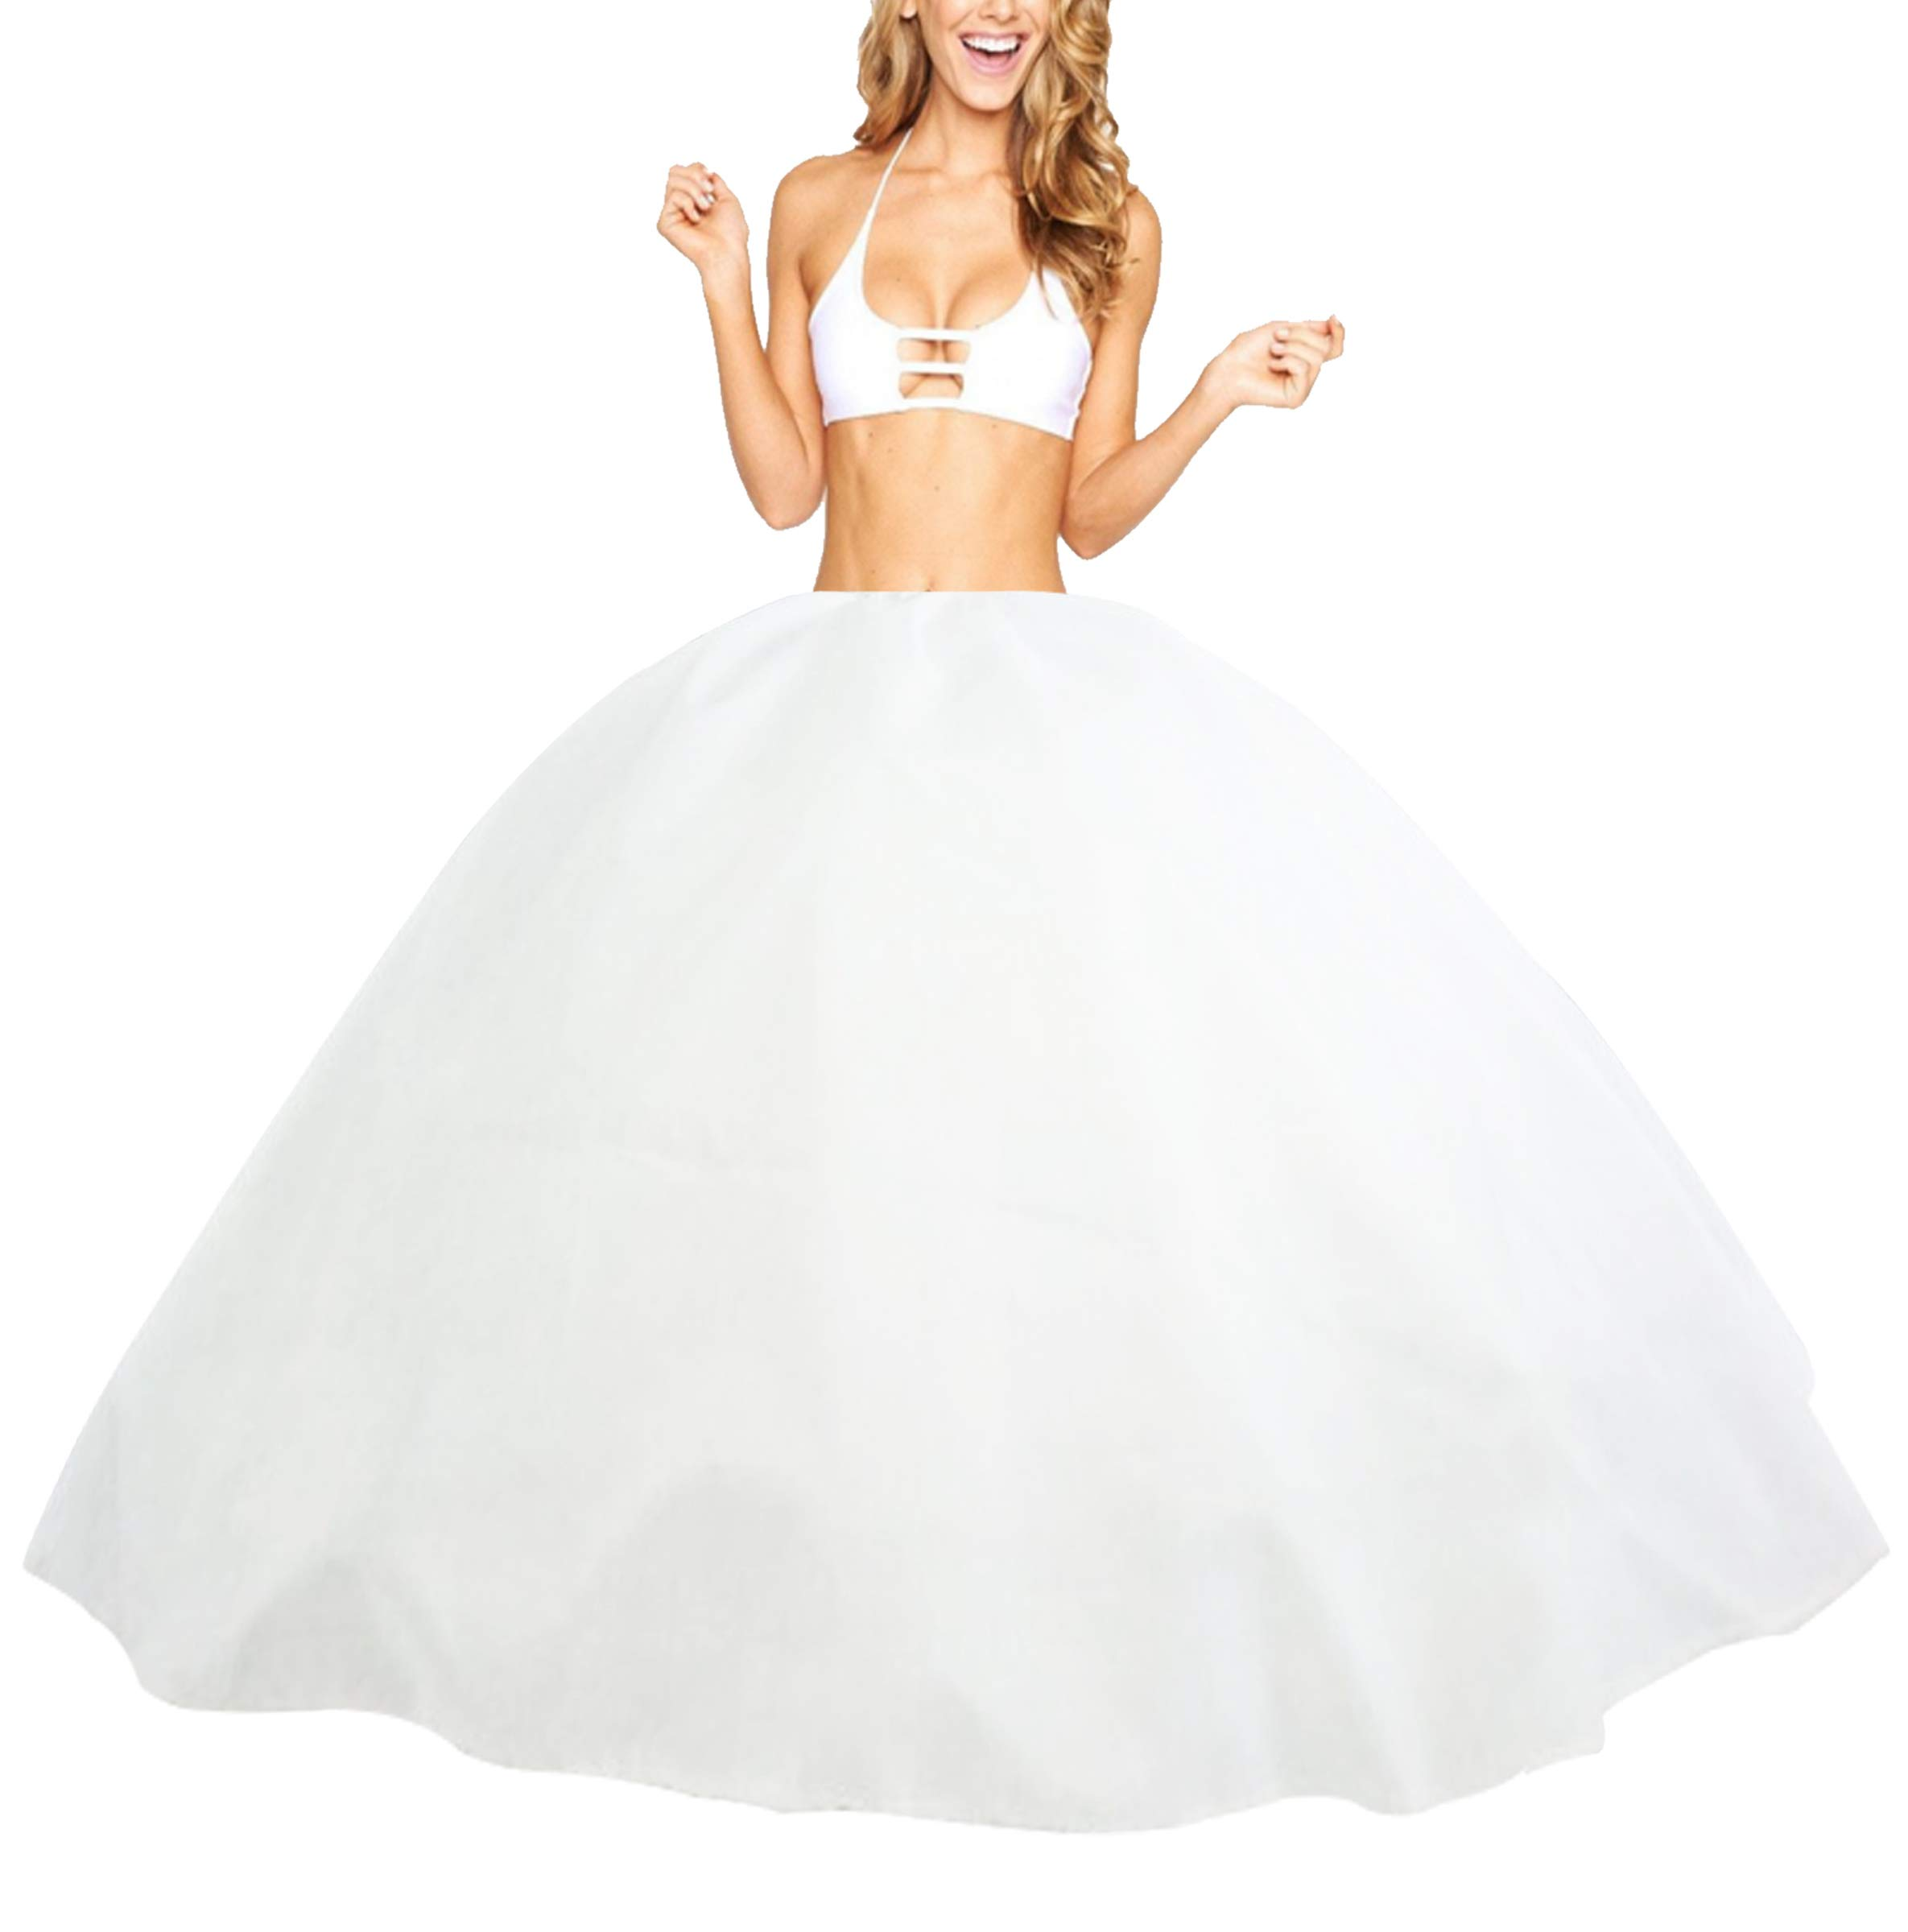 Petticoat quiceañera 5 Tulle Layers Netting Drawstring on Waist Top Taffeta 45 inches from Waist to Bottom